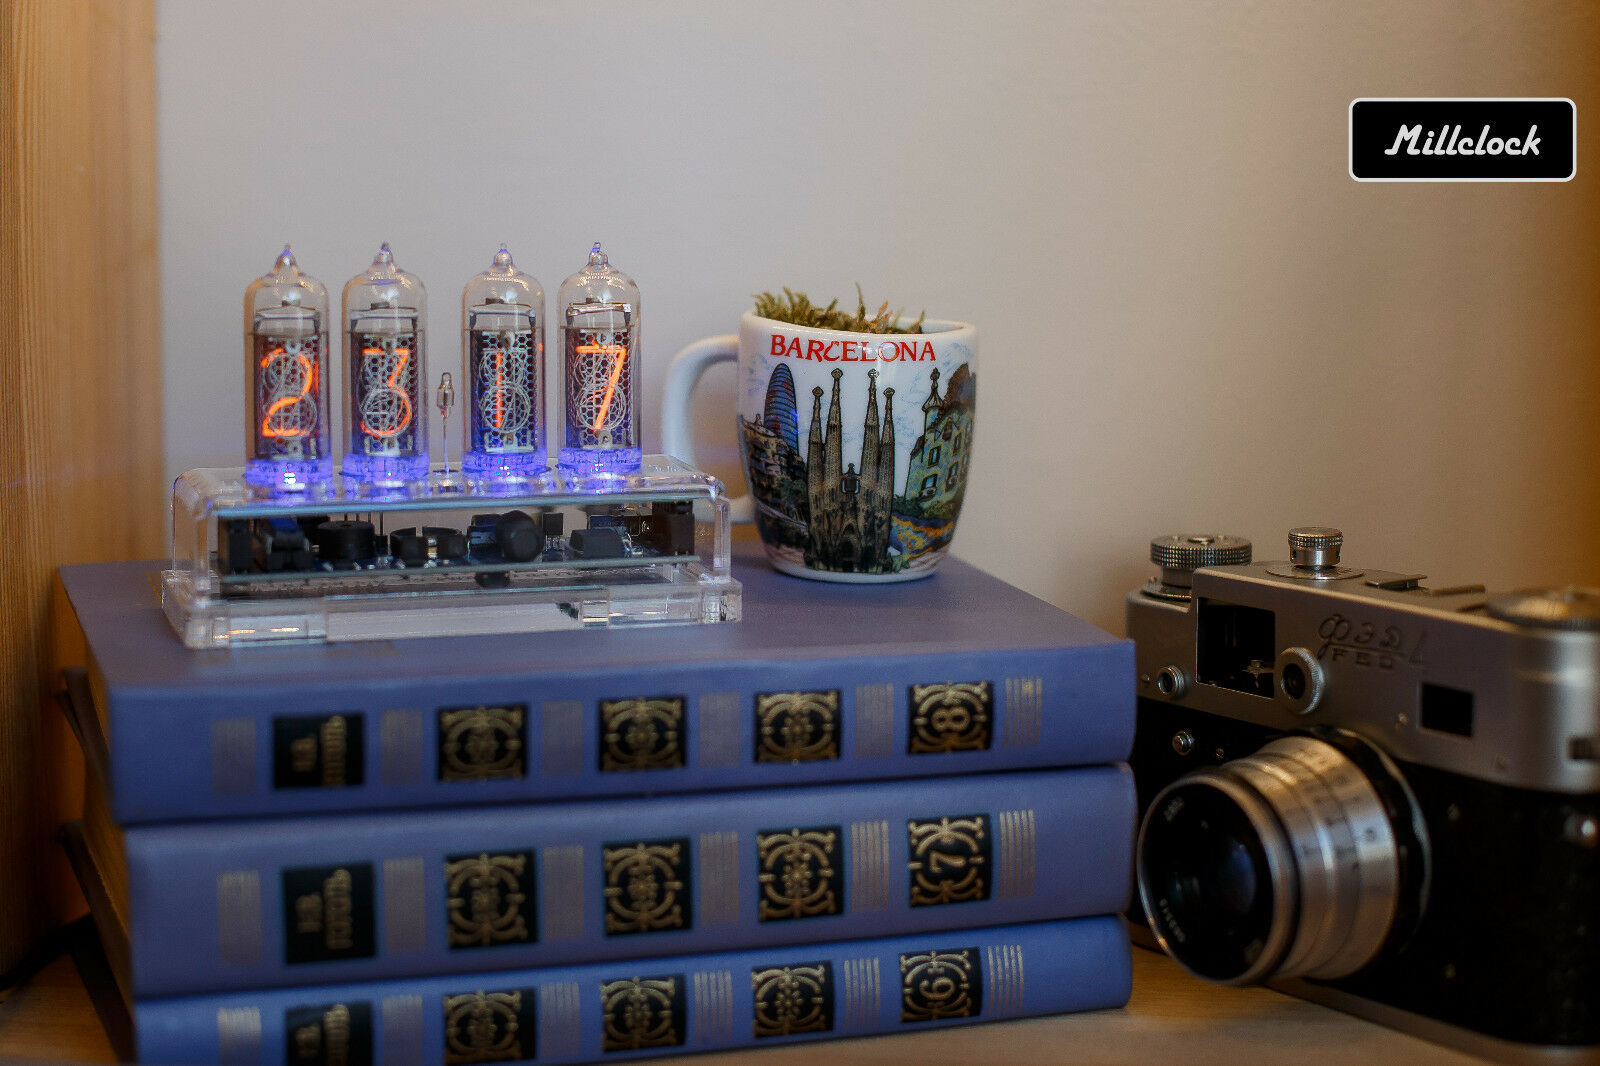 IN-14 NIXIE TUBE CLOCK ASSEMBLED WITH ENCLOSURE AND ADAPTER 4-tubes by MILLCLOCK